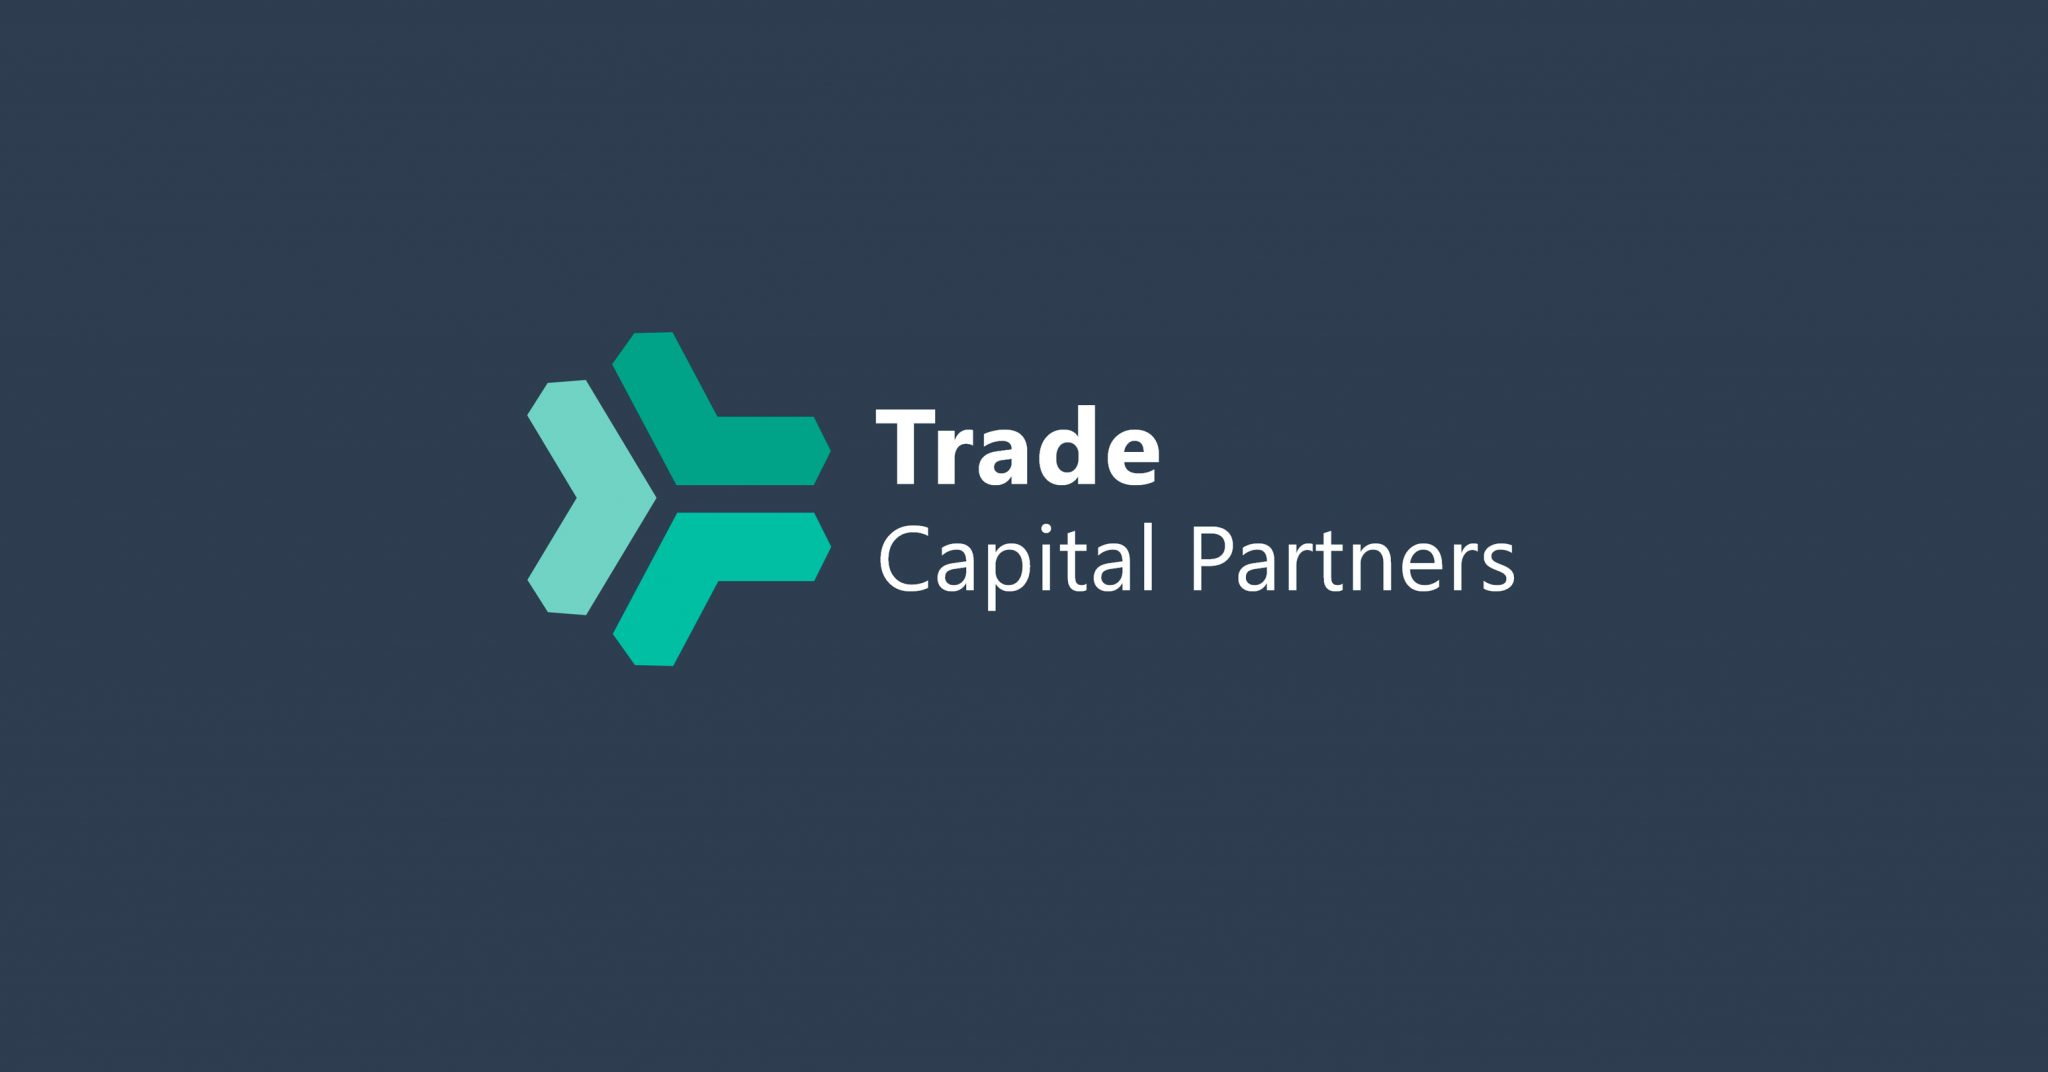 TCP, Trade Finance-Focused FinTech Startup, Closes Series-A Funding Round Led by New York-Based Modus Capital